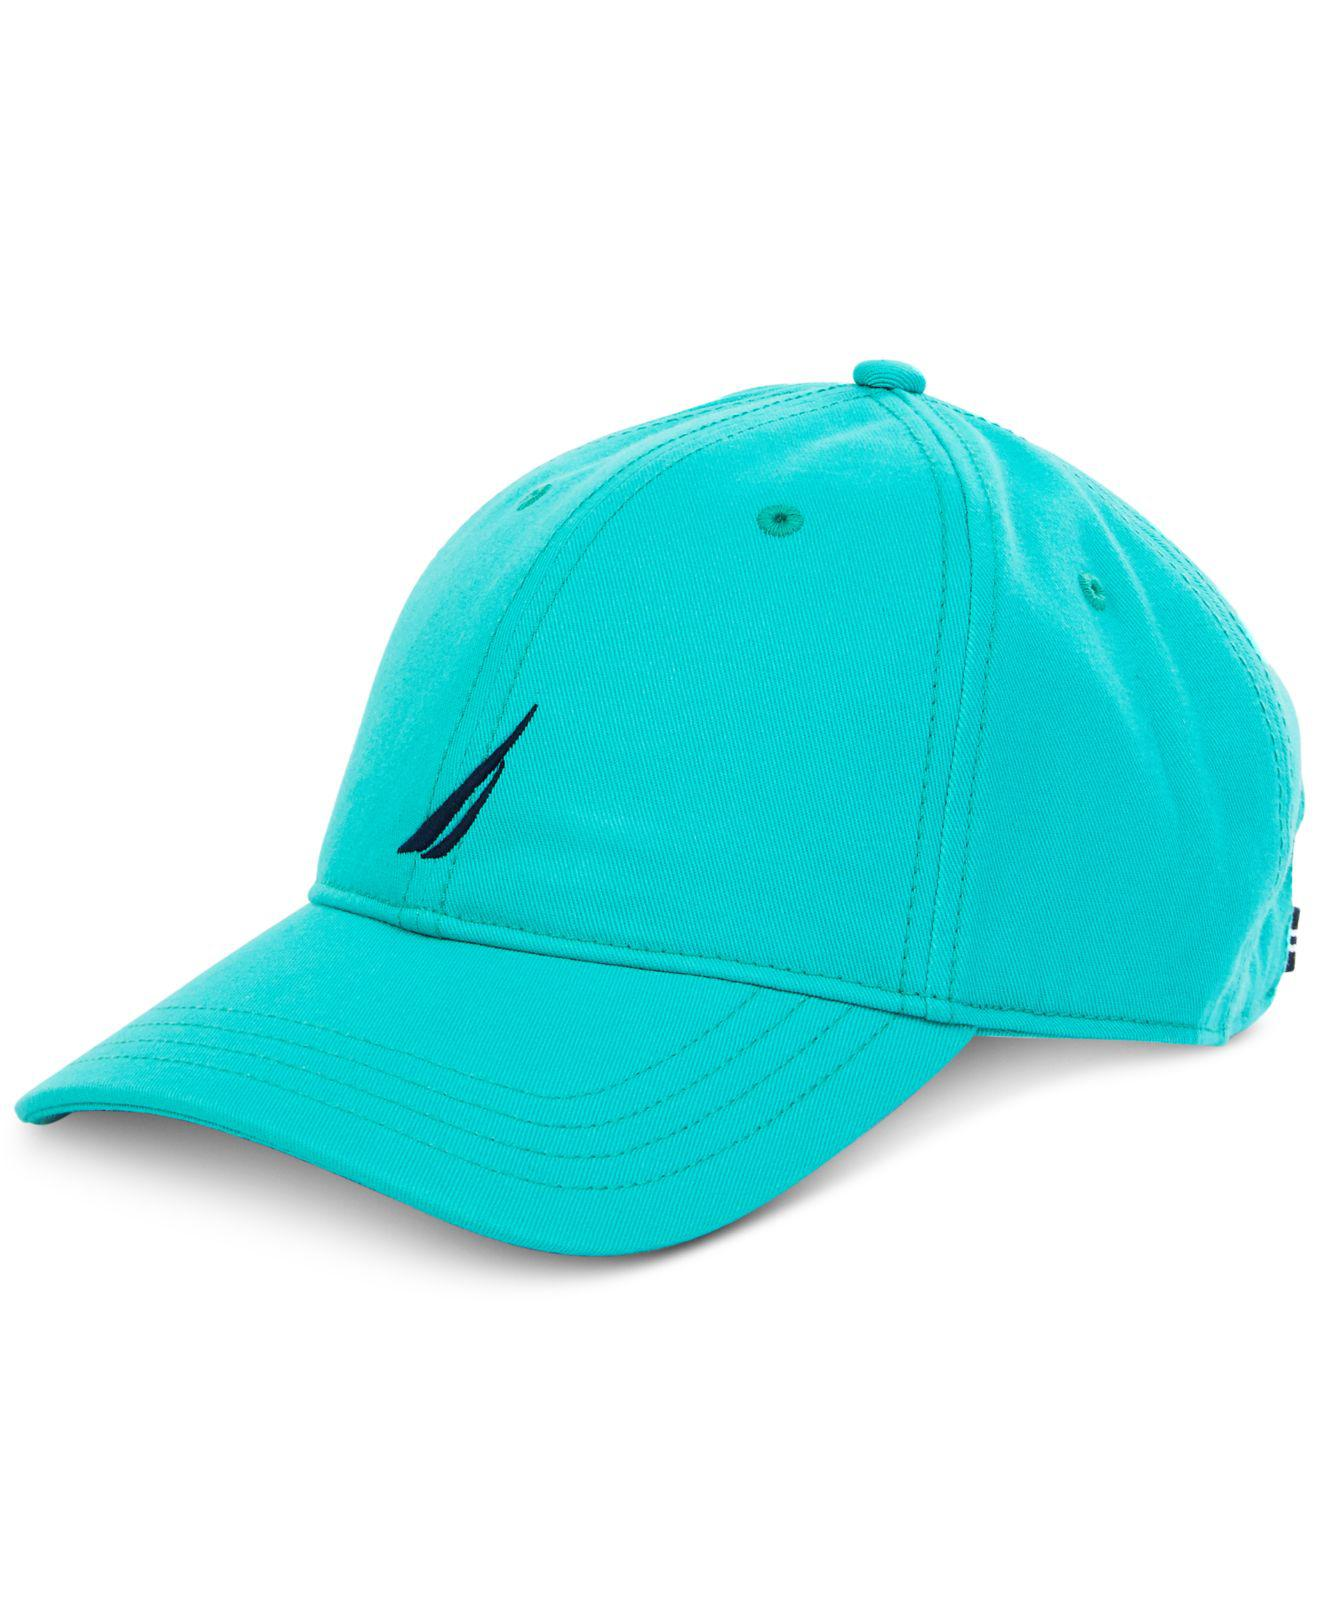 59282a8d85f973 Nautica J Class Embroidered Hat in Blue for Men - Lyst